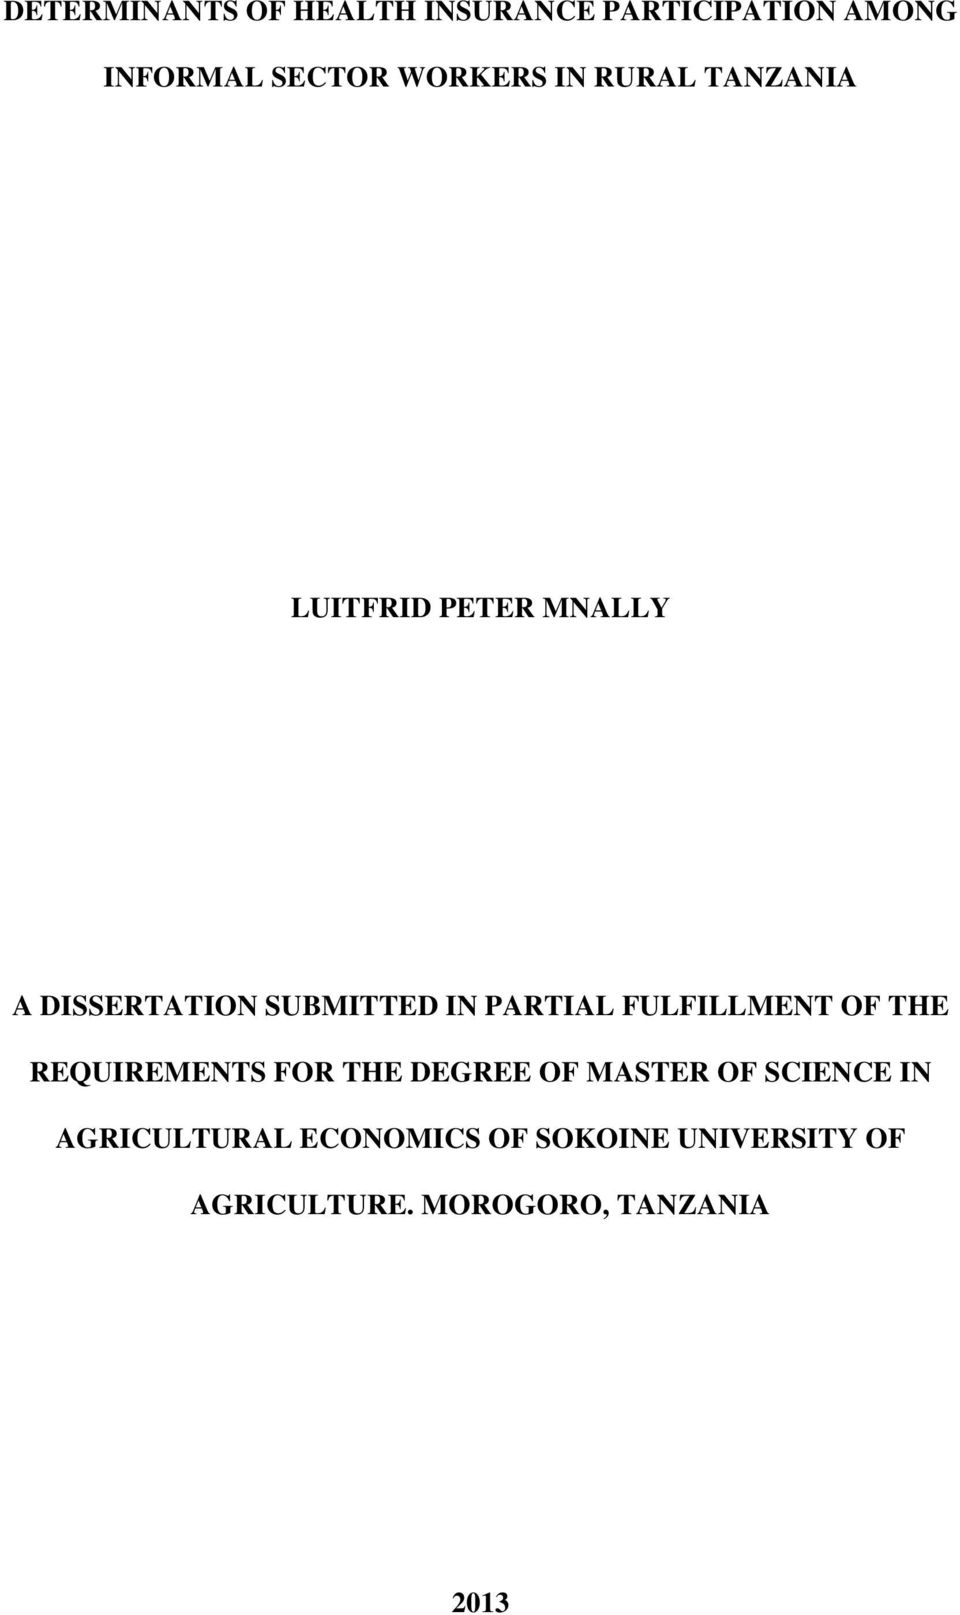 FULFILLMENT OF THE REQUIREMENTS FOR THE DEGREE OF MASTER OF SCIENCE IN